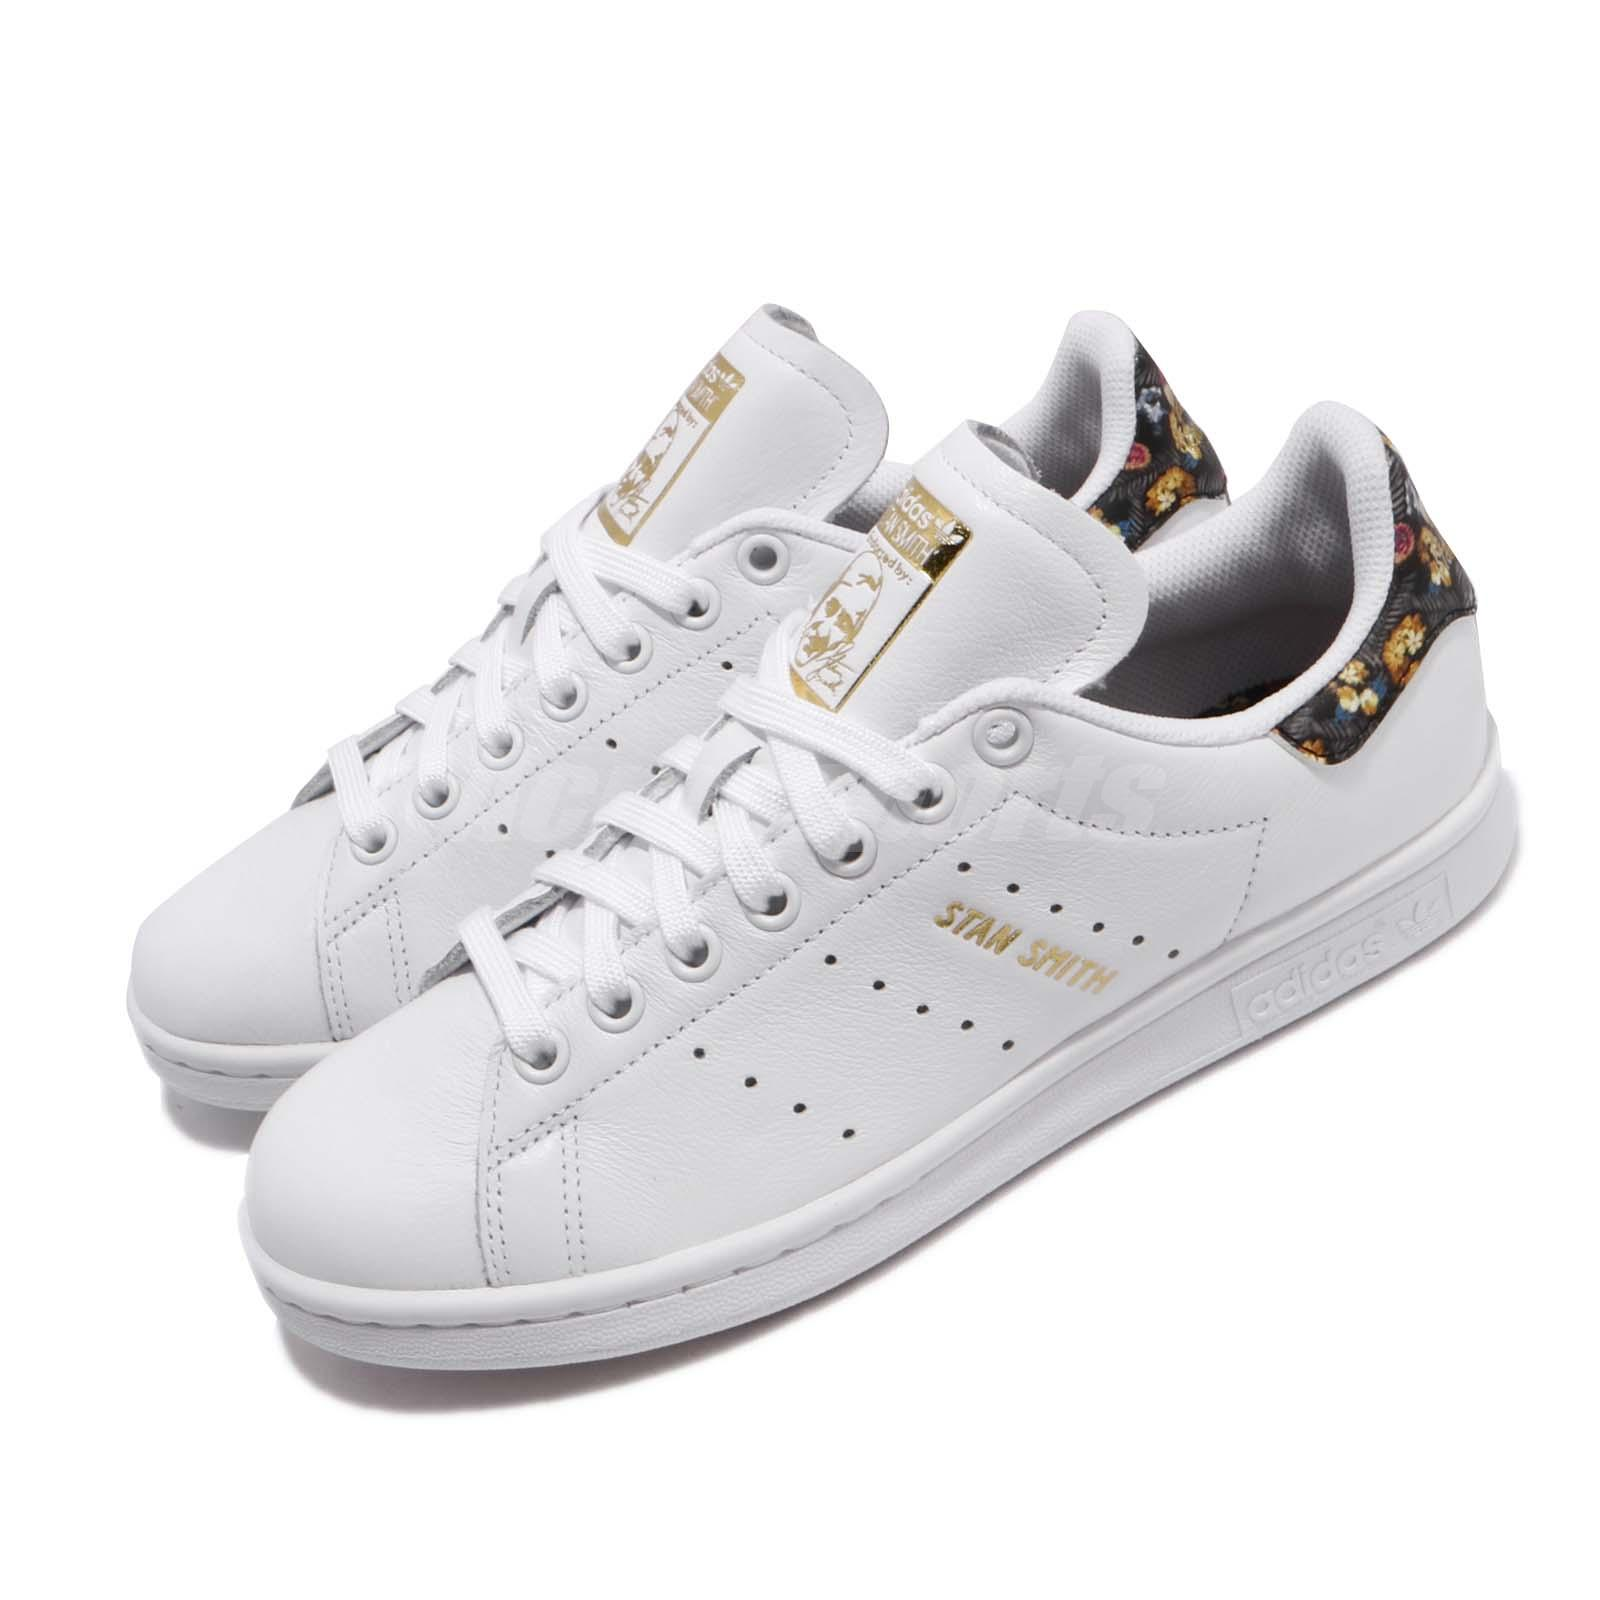 the latest 8f2ec cbb24 Details about adidas Originals Stan Smith White Gold Floral Women Casual  Shoes Sneakers EF1481